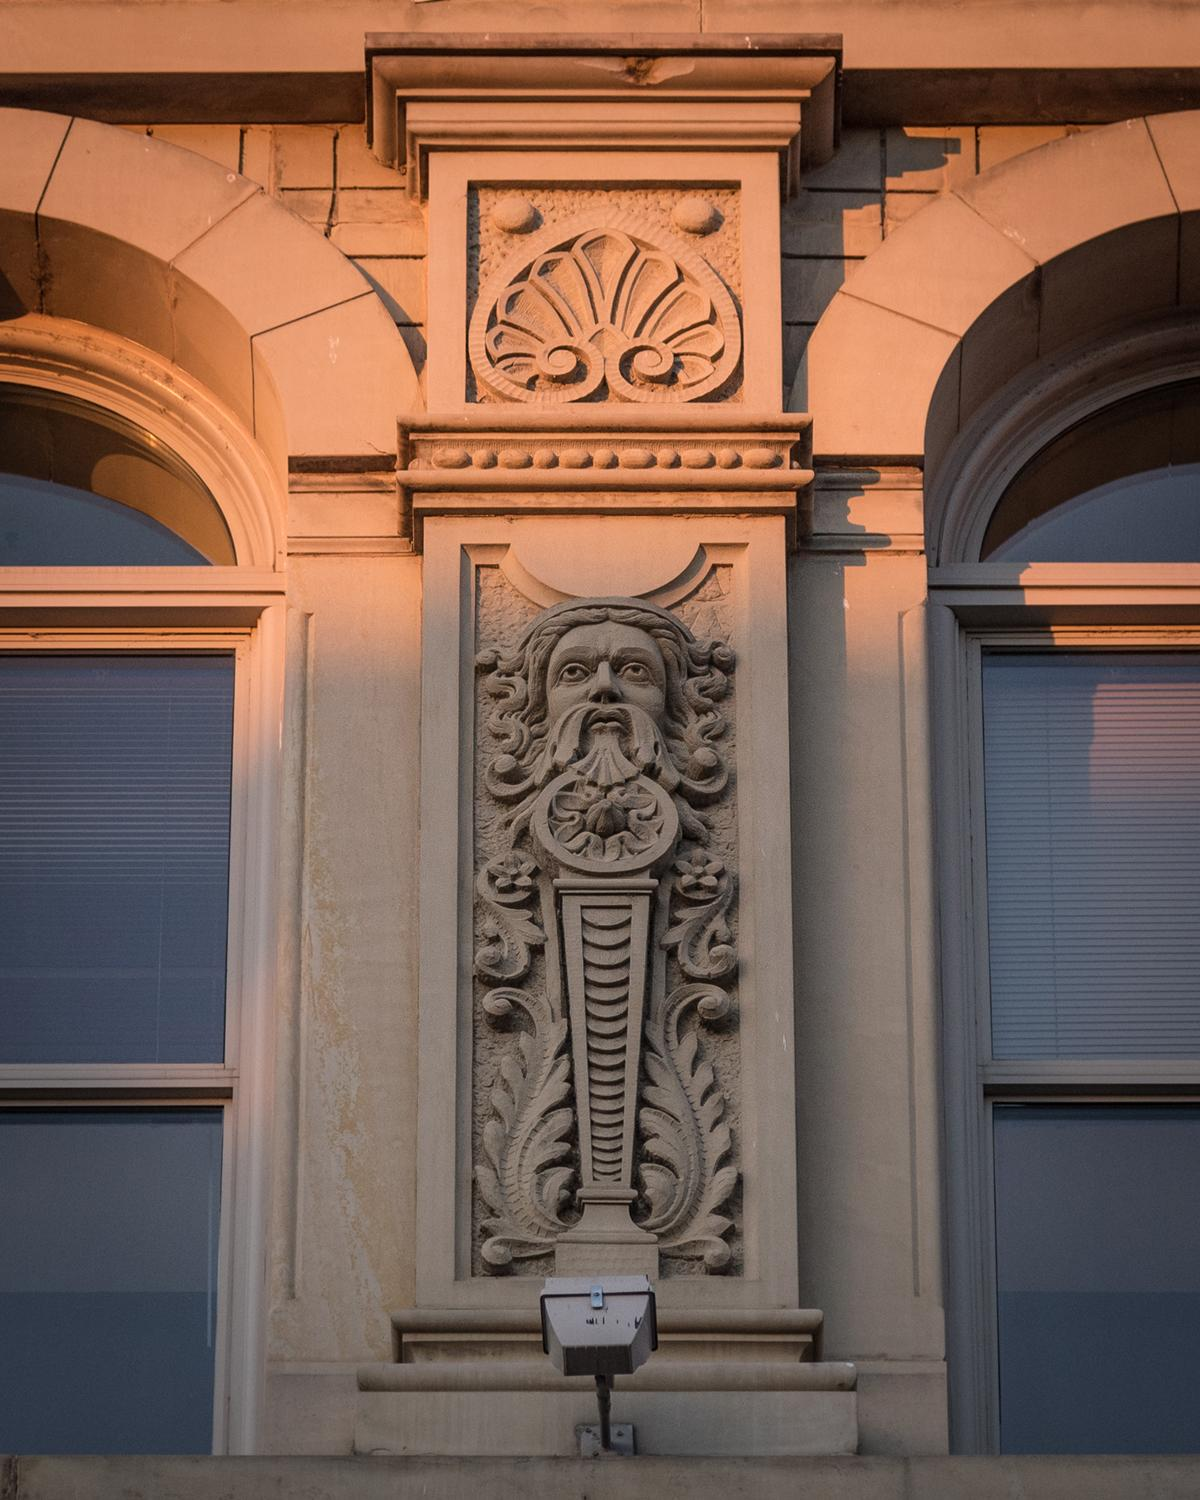 A Narrow Home That Keeps Its Eyes On The Street: The Sculpted Faces Of Cincy's Places